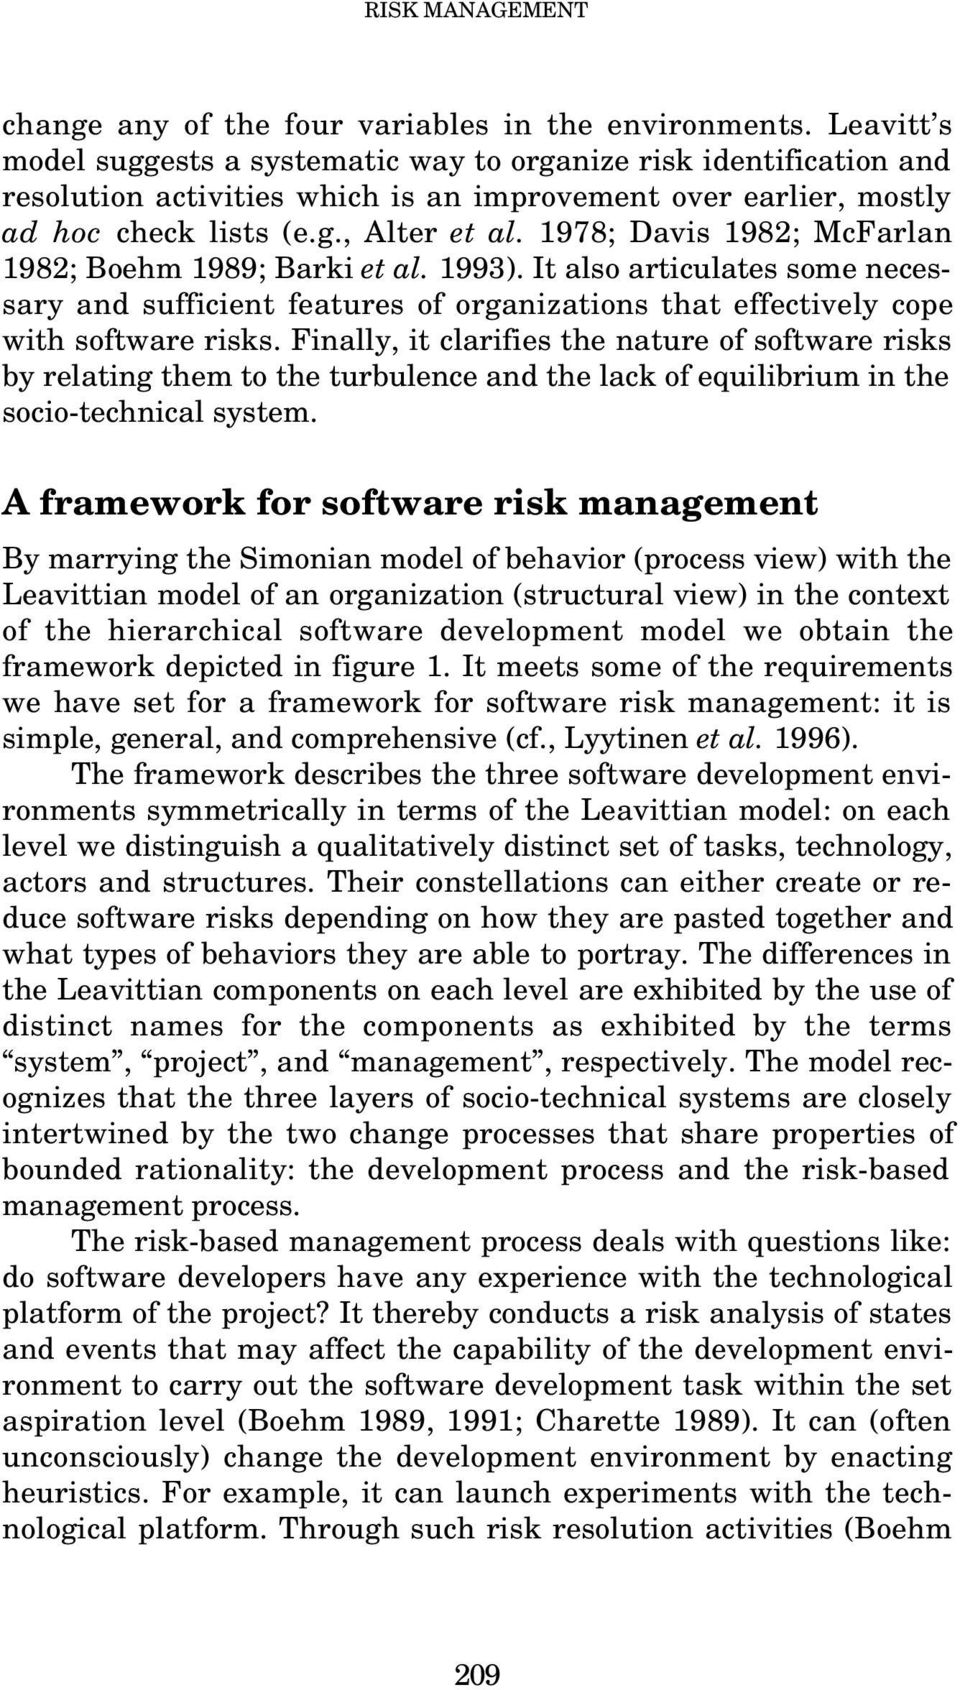 1978; Davis 1982; McFarlan 1982; Boehm 1989; Barki et al. 1993). It also articulates some necessary and sufficient features of organizations that effectively cope with software risks.